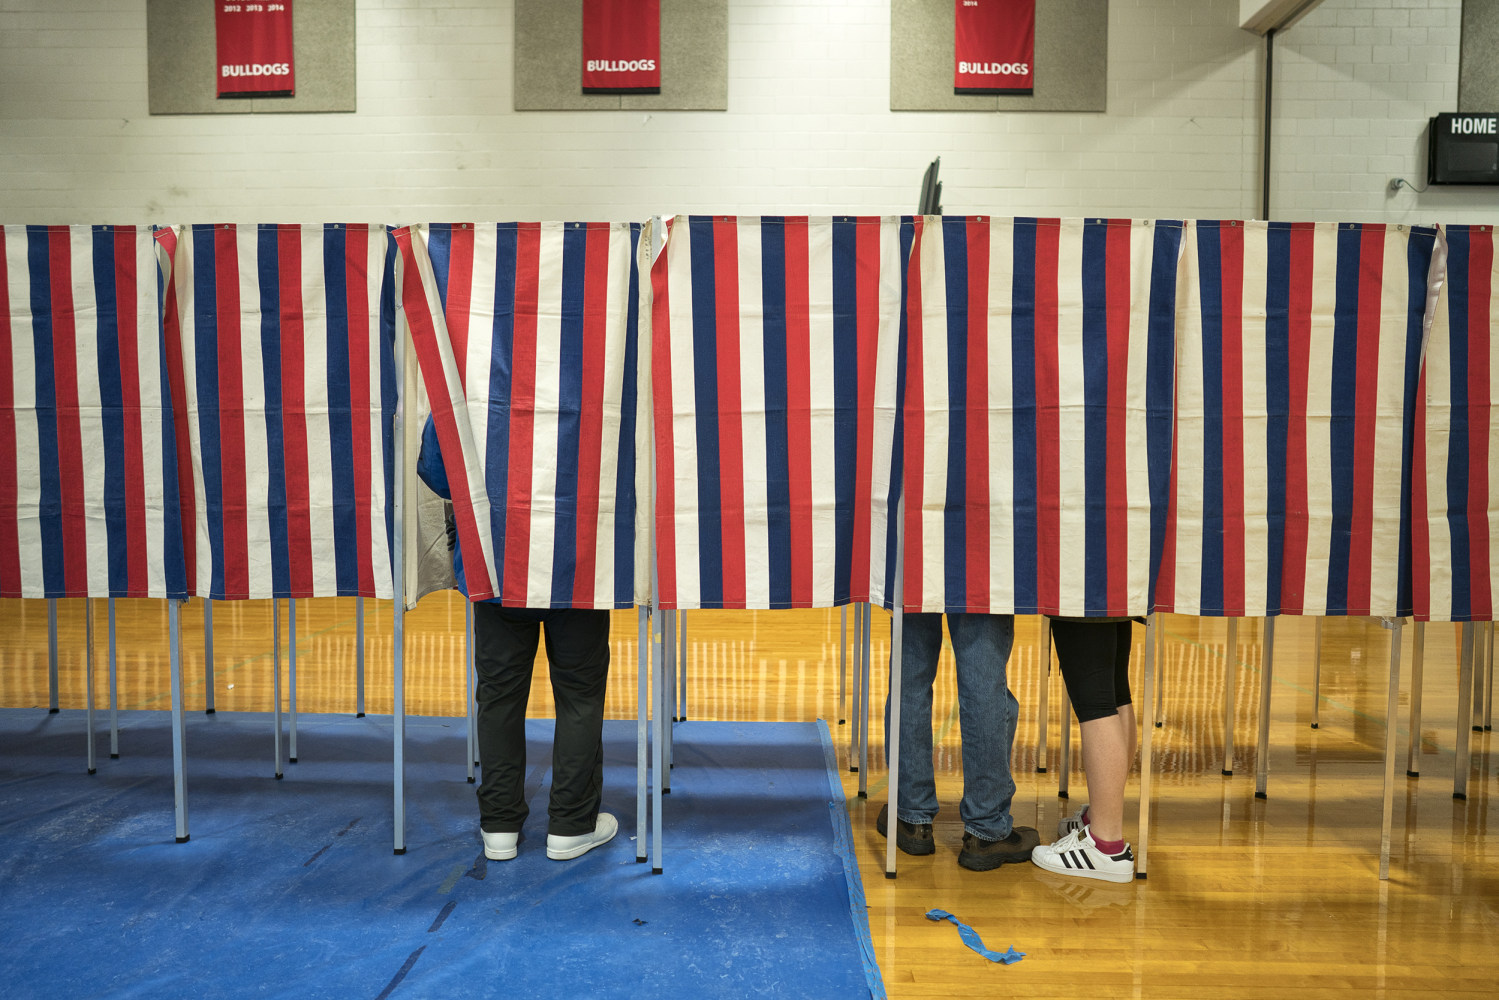 Court hears challenge to New Hampshire 'ballot selfie' law